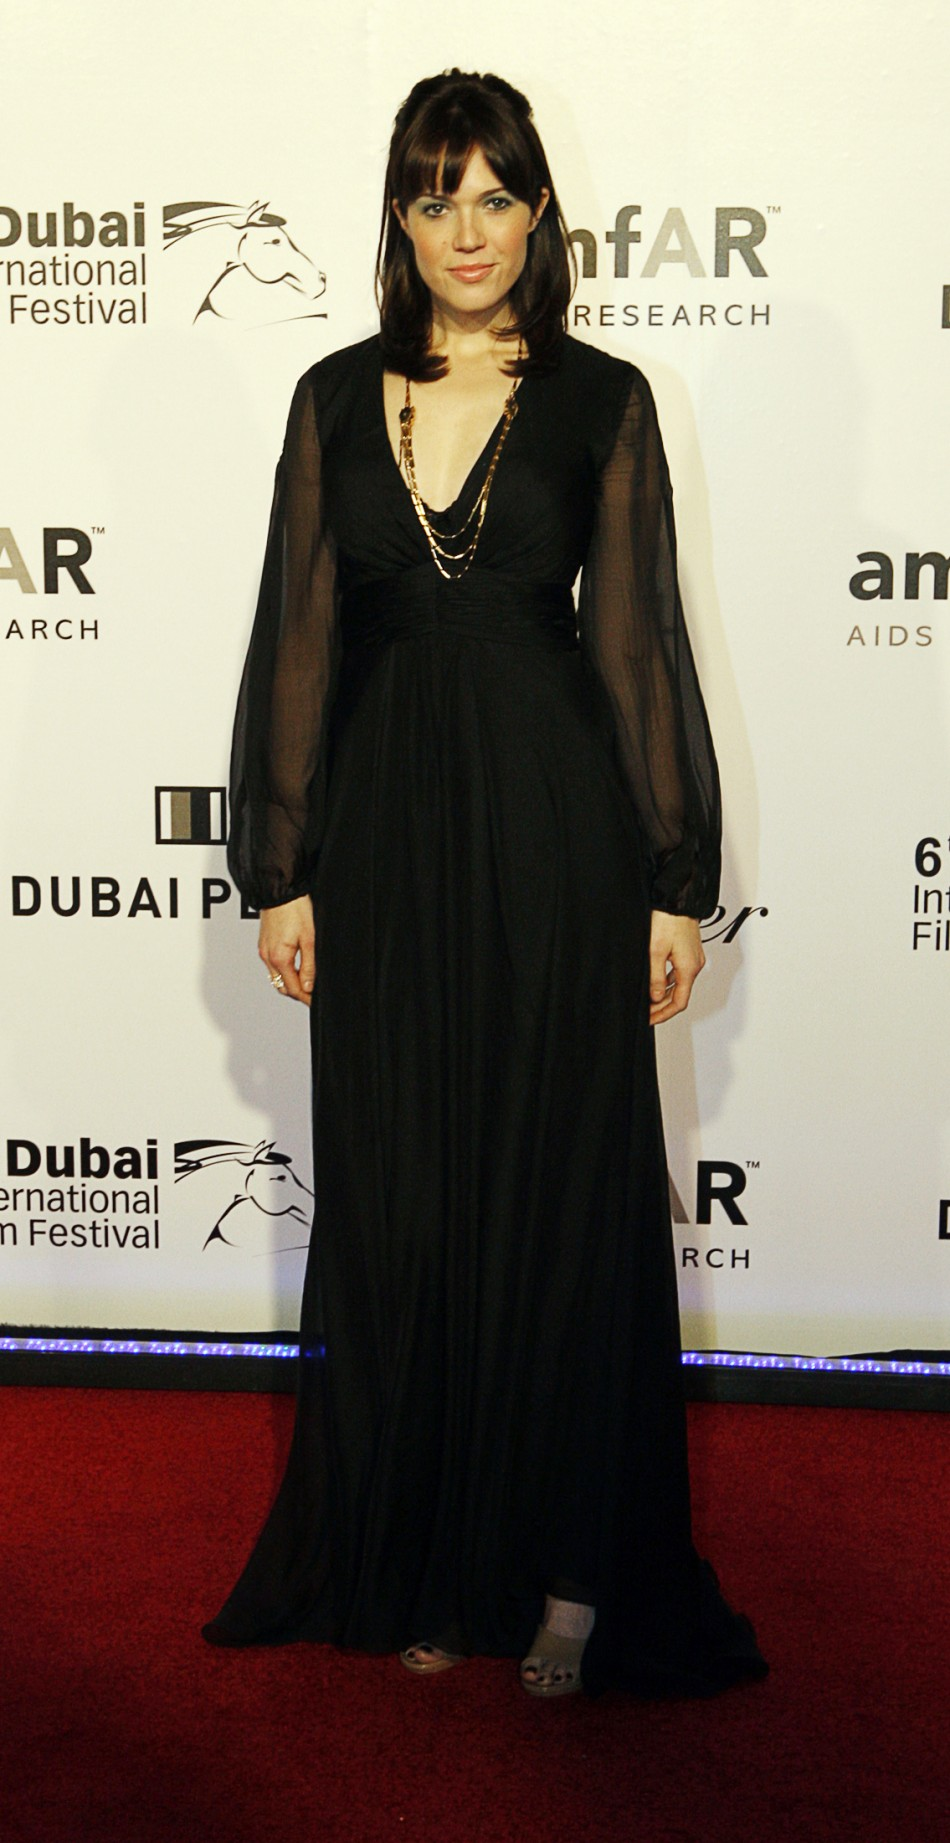 U.S. actress Mandy Moore arrive for the Auction for Cinema Against Aids during the Dubai International Film festival in Dubai